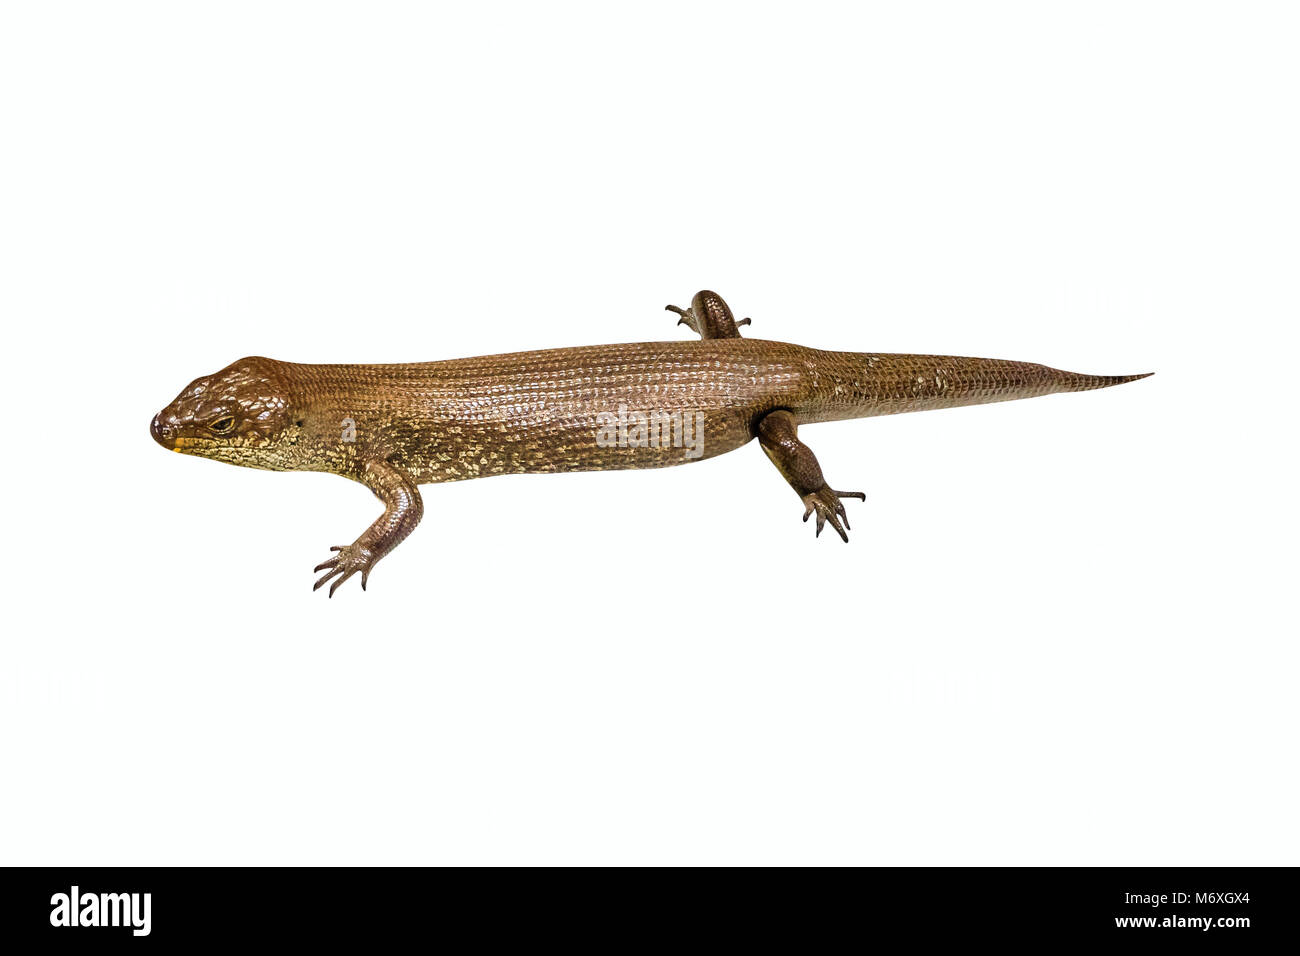 Egernia kingii, King's skink, isolated on white background. It is found in the coastal regions of south-western - Stock Image